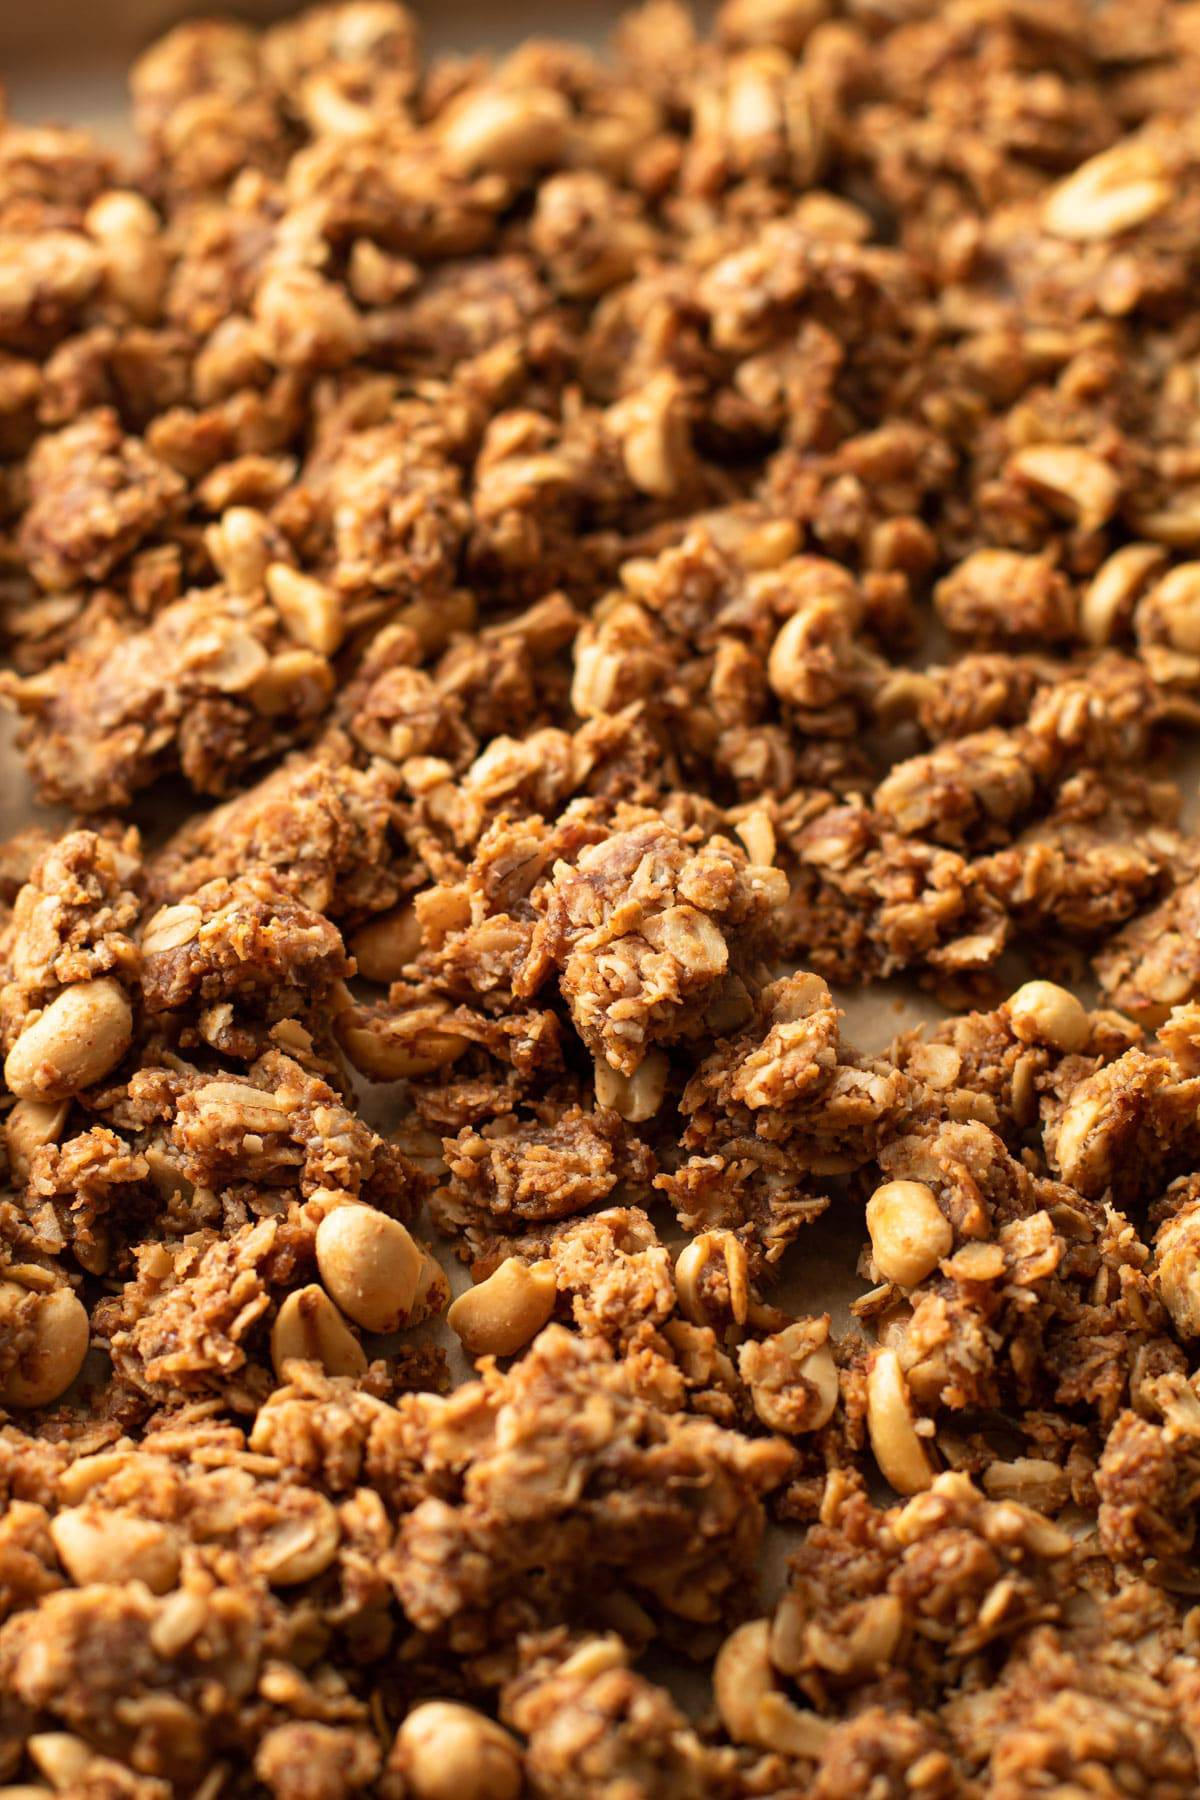 Baked peanut butter granola on a baking sheet.